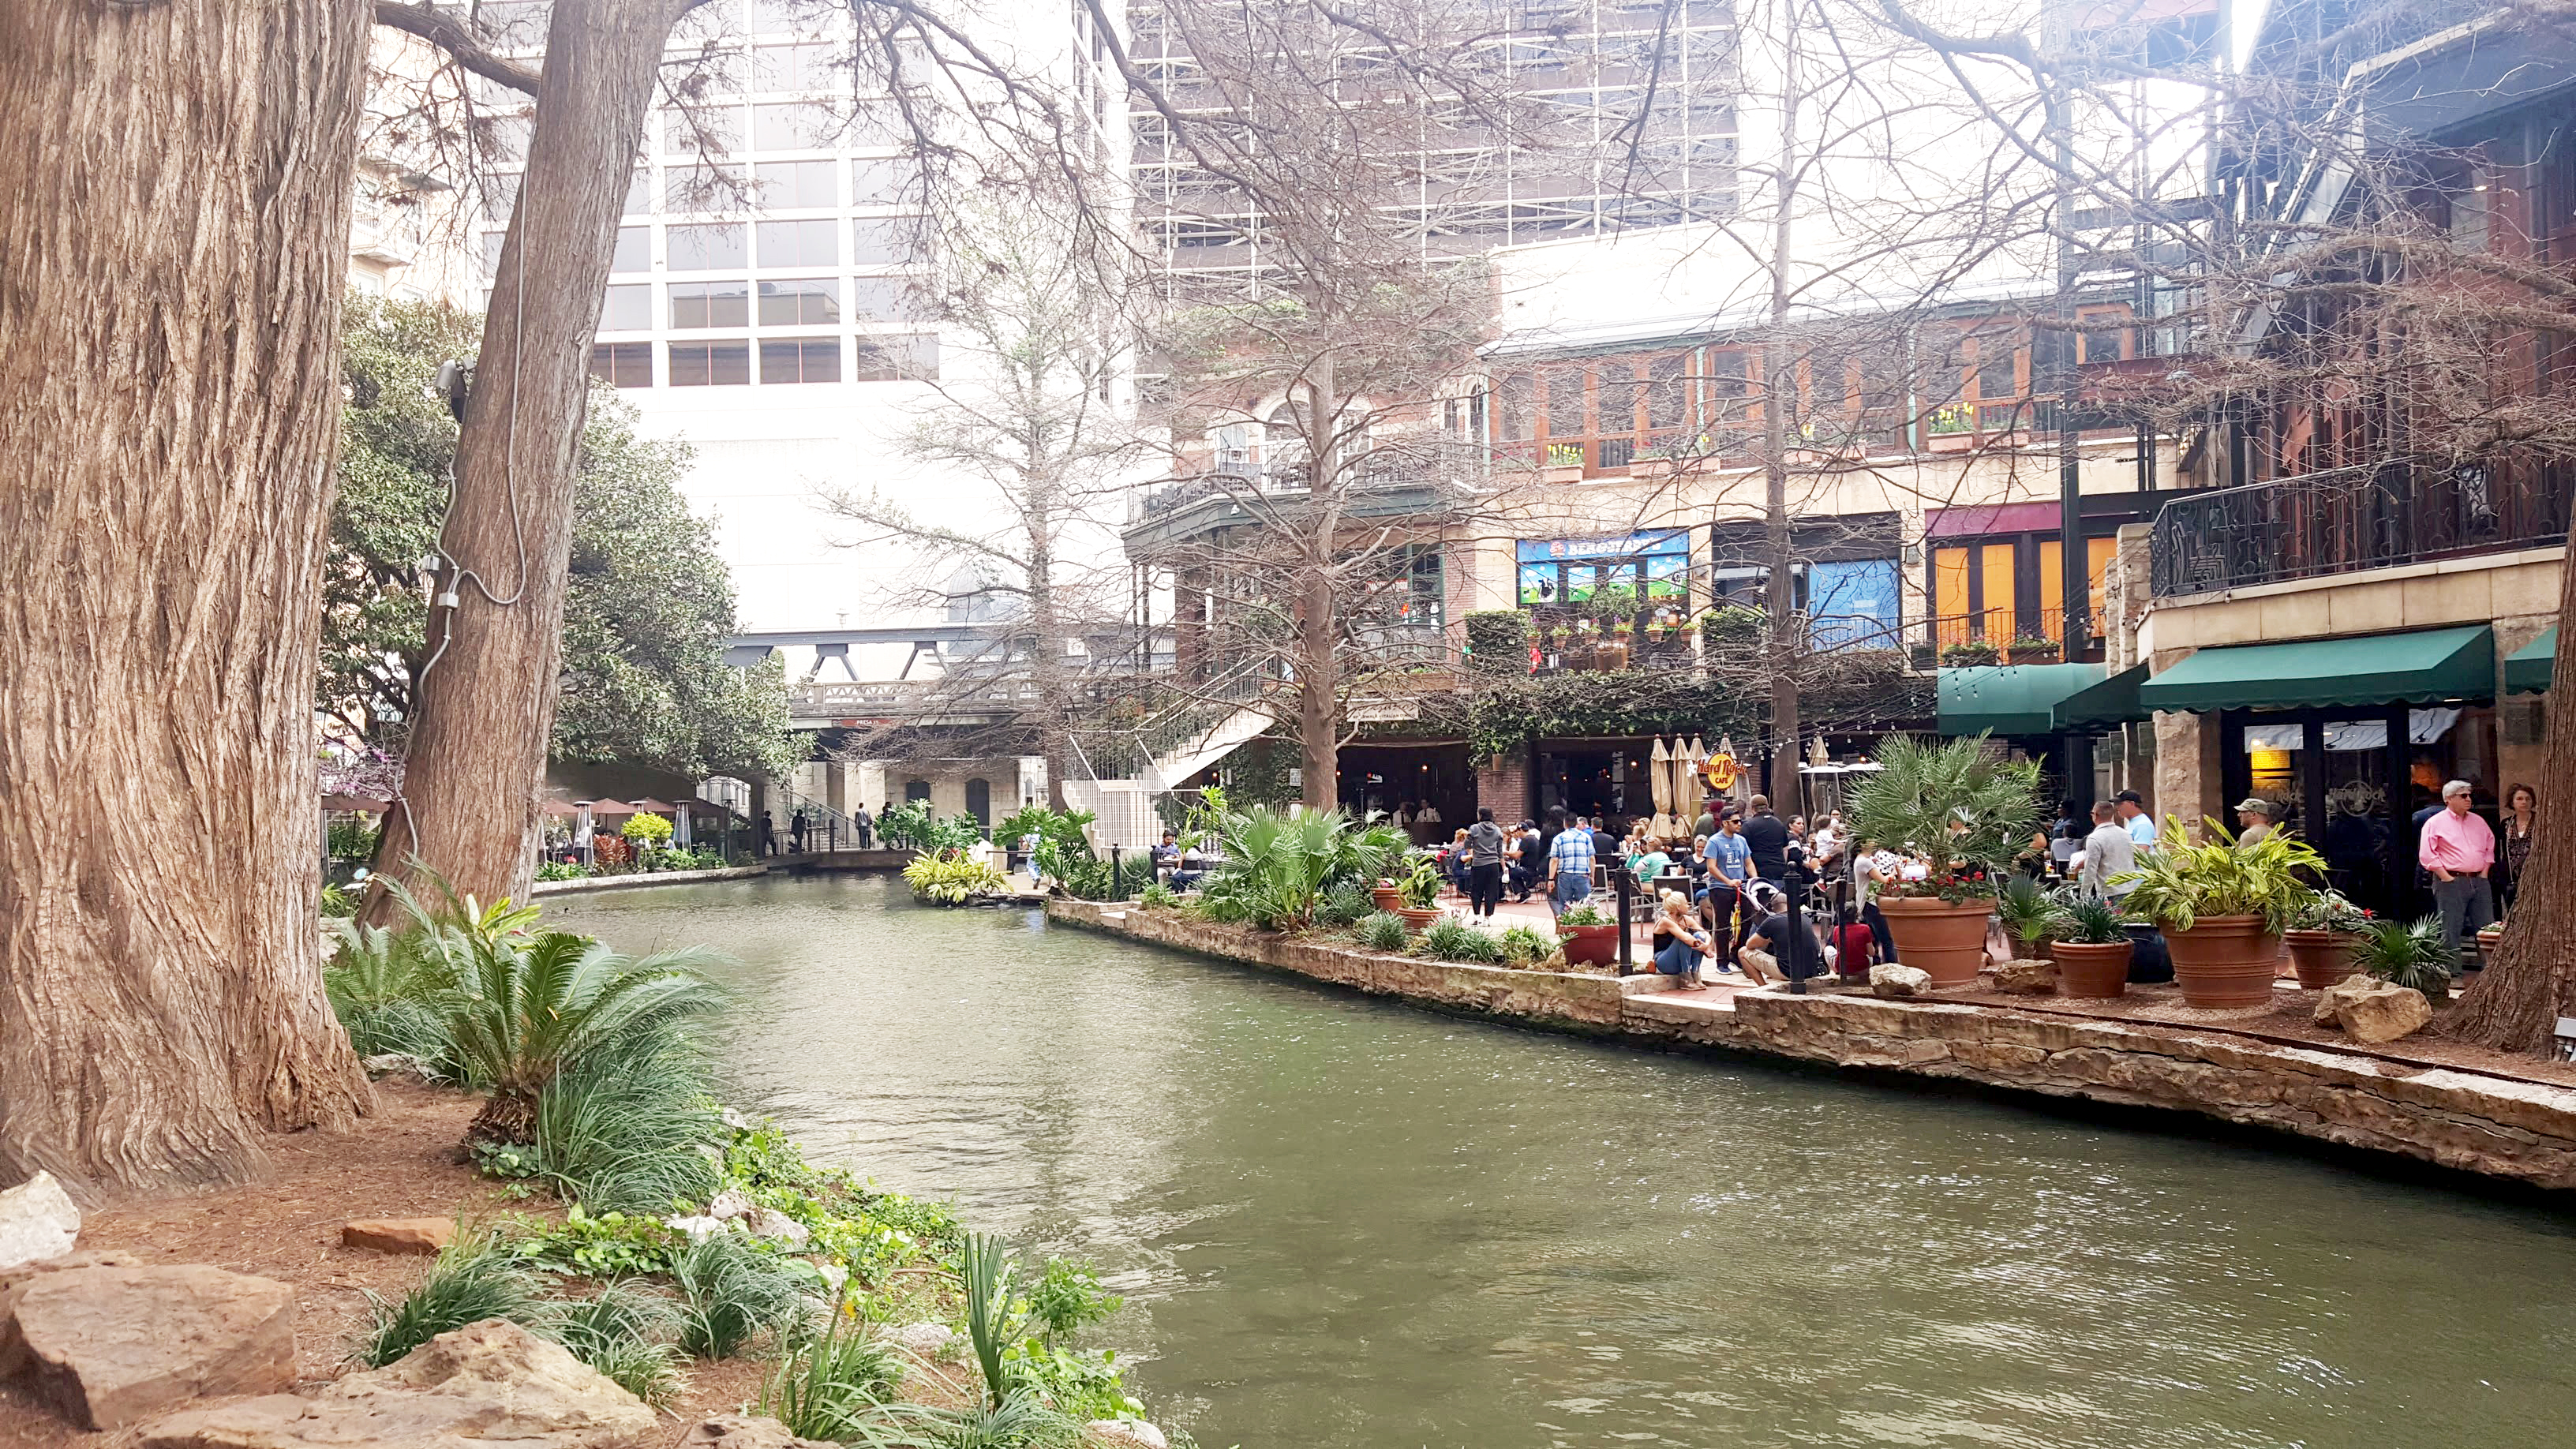 Cypress Trees along the River Walk in San Antonio Texas.